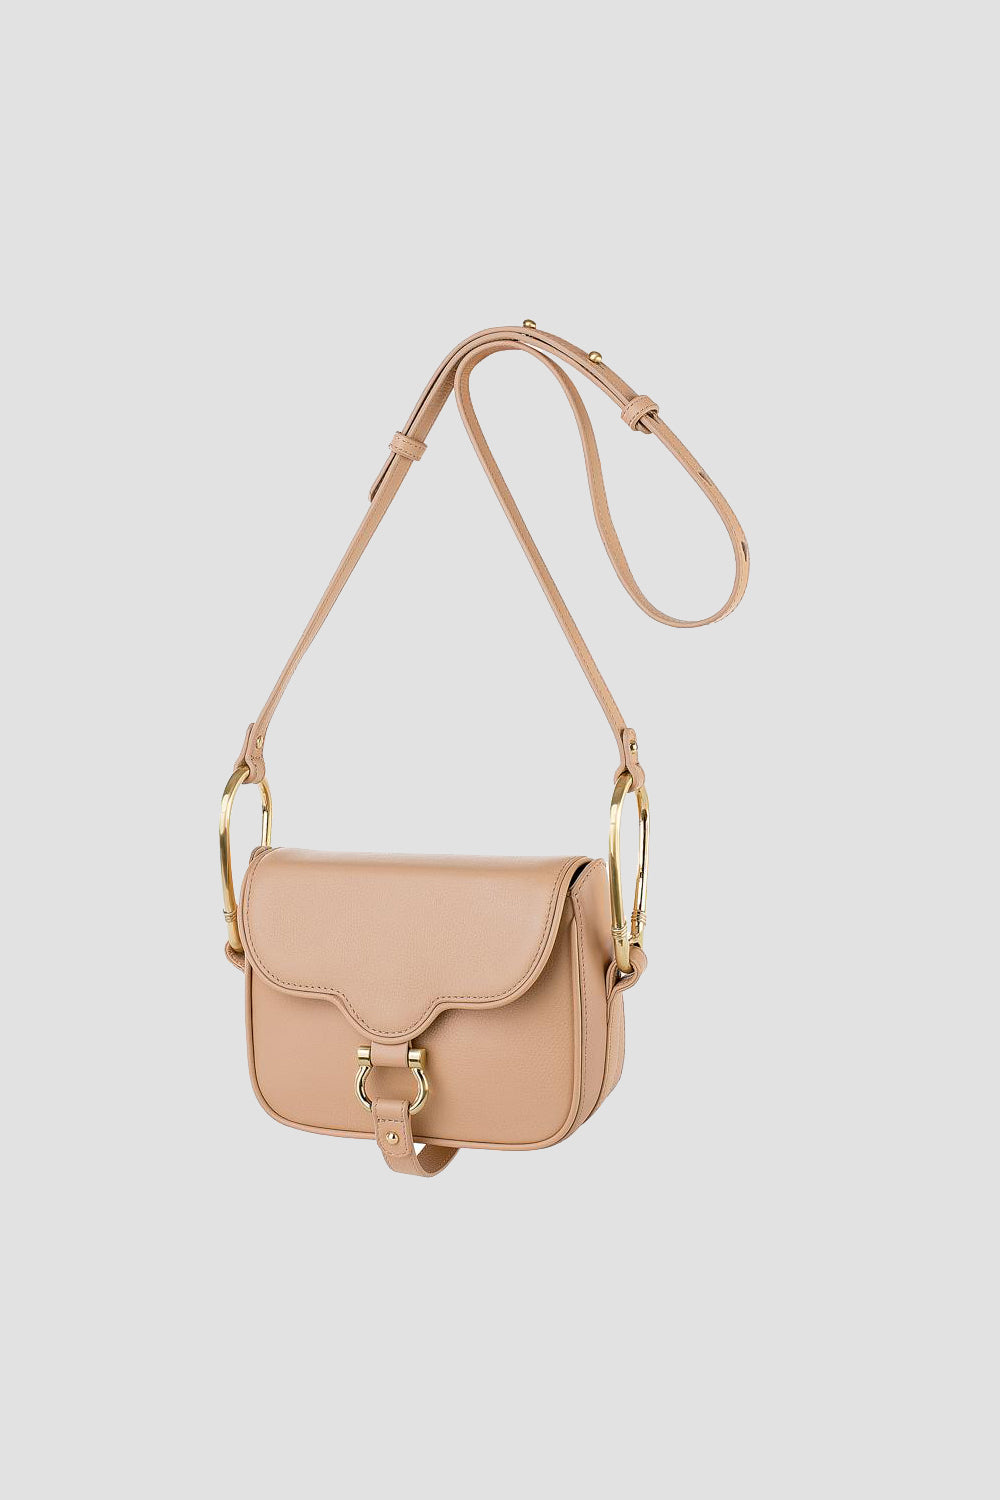 Buy The Gigi Mini Bag from SANCIA at PAYA boutique